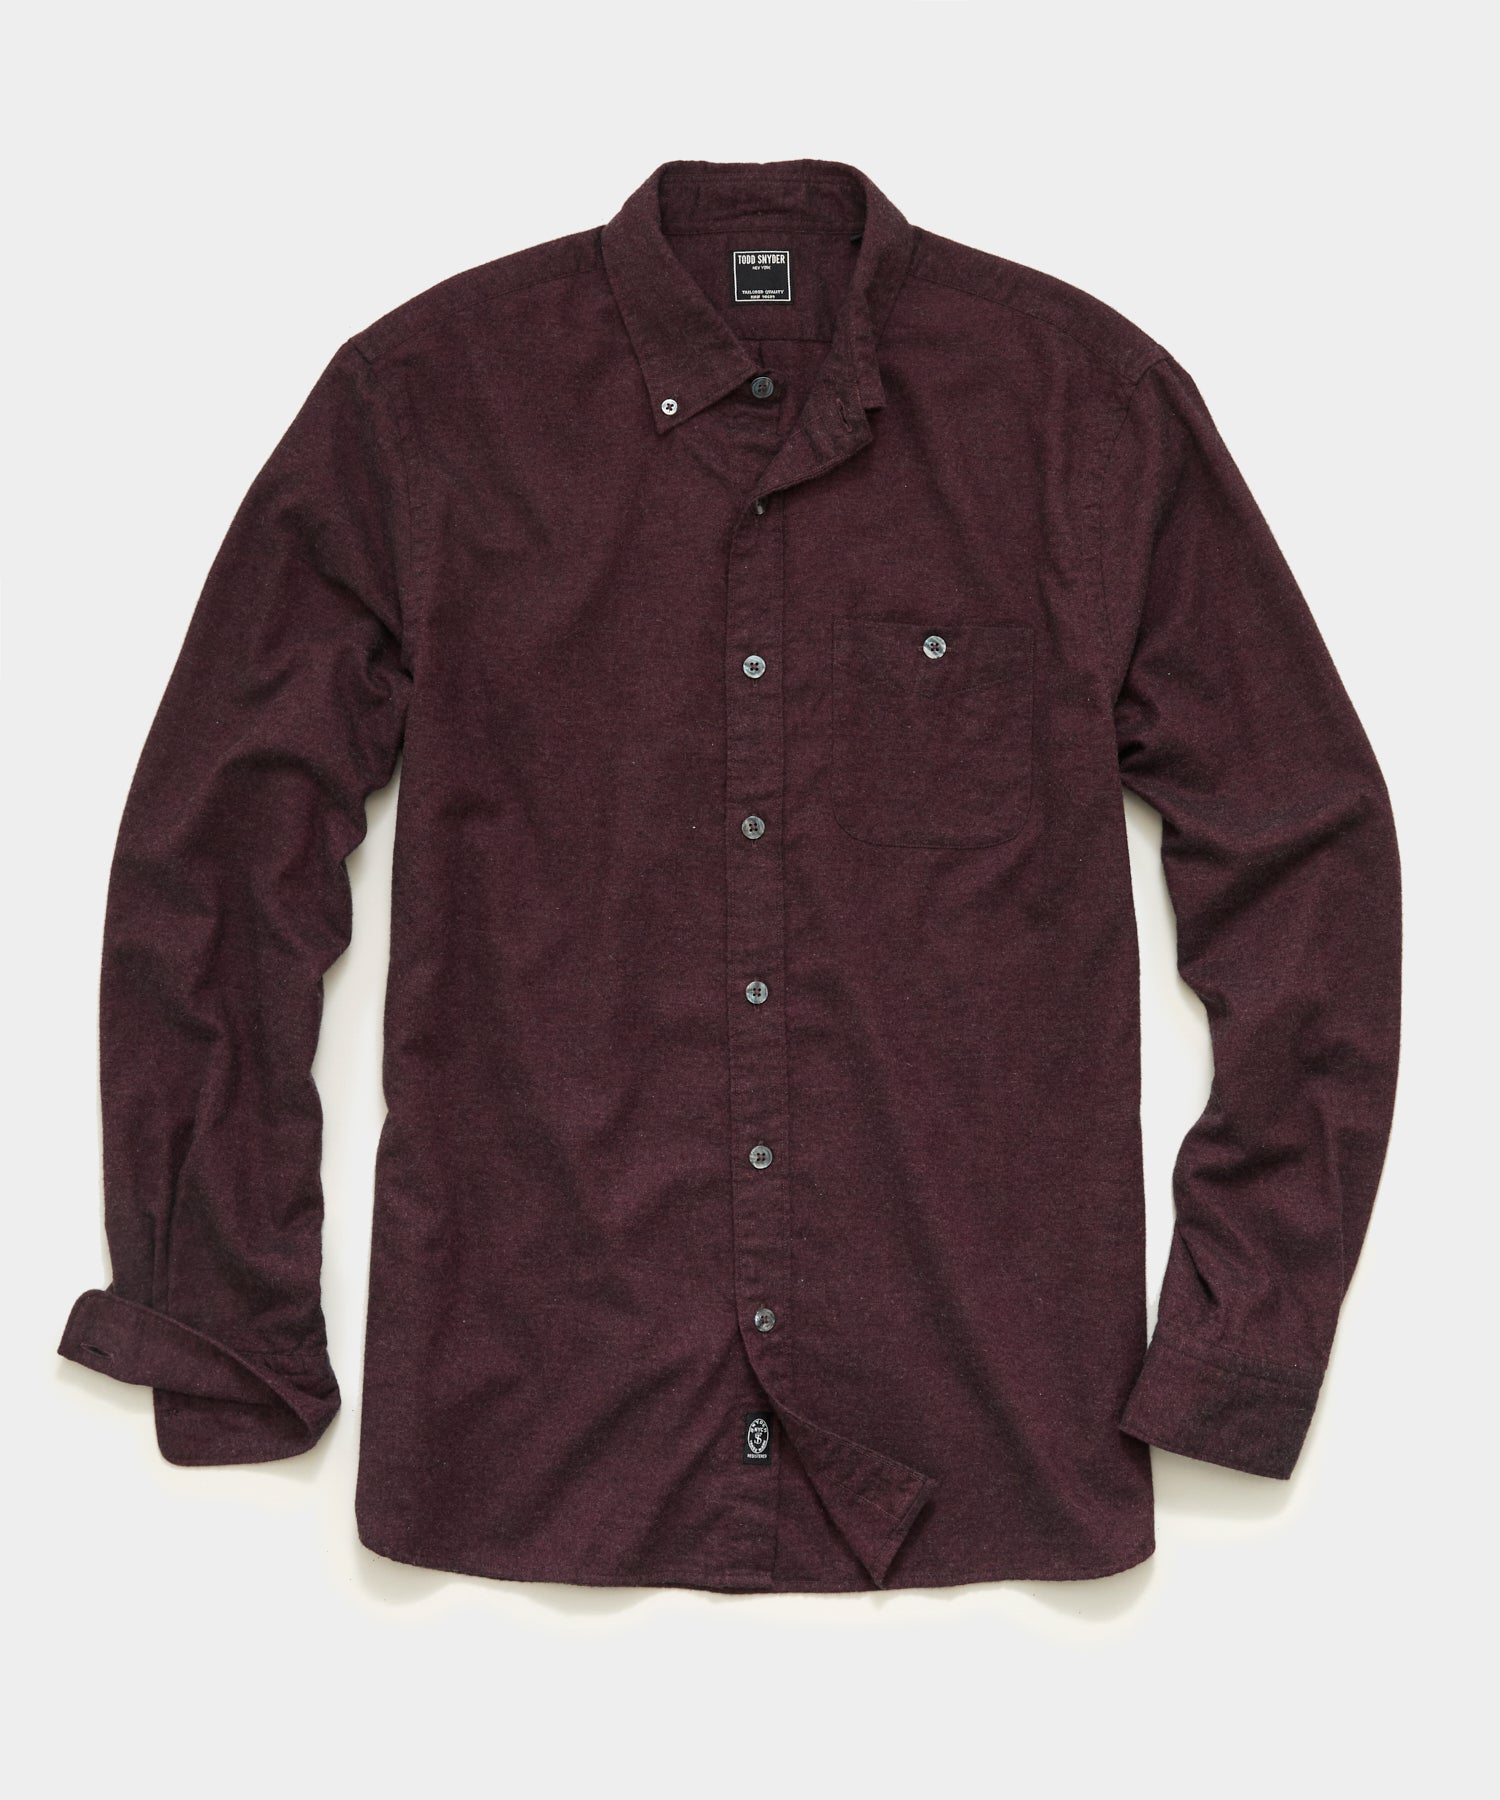 Brushed Cotton Cashmere Twill Shirt in Burgundy